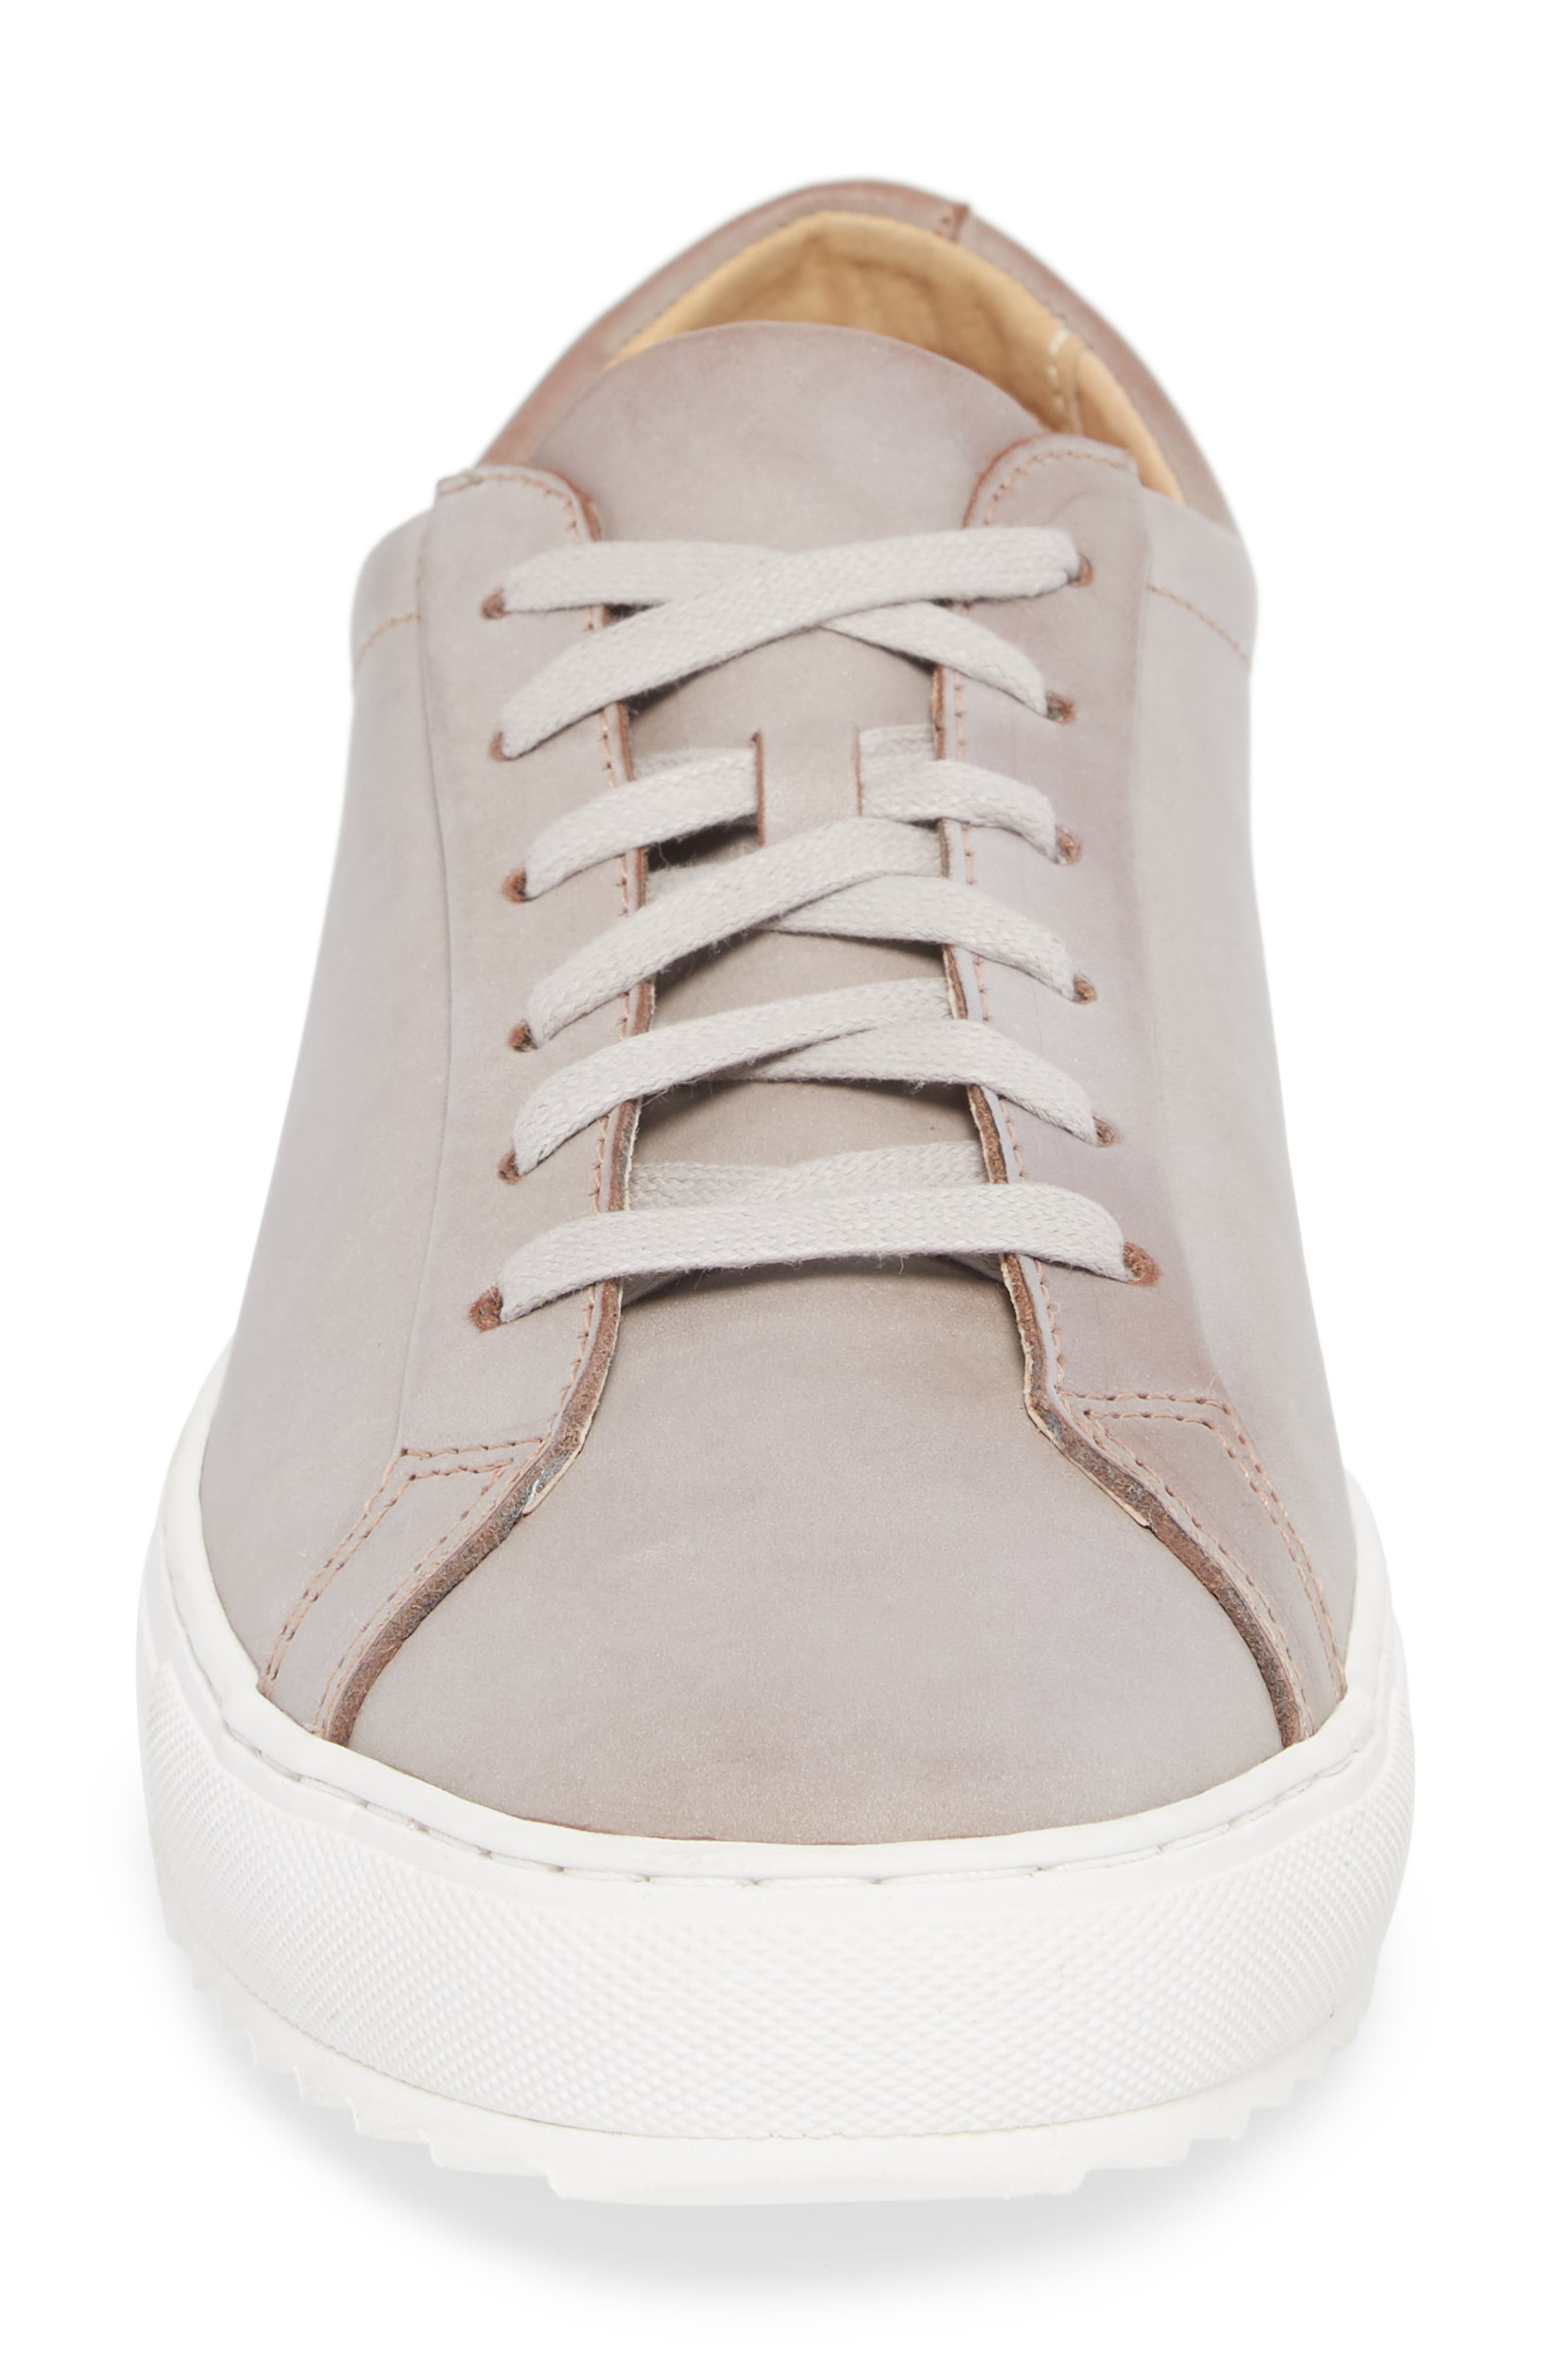 Kennedy Lugged Sneaker,                             Alternate thumbnail 4, color,                             SAND STONE LEATHER